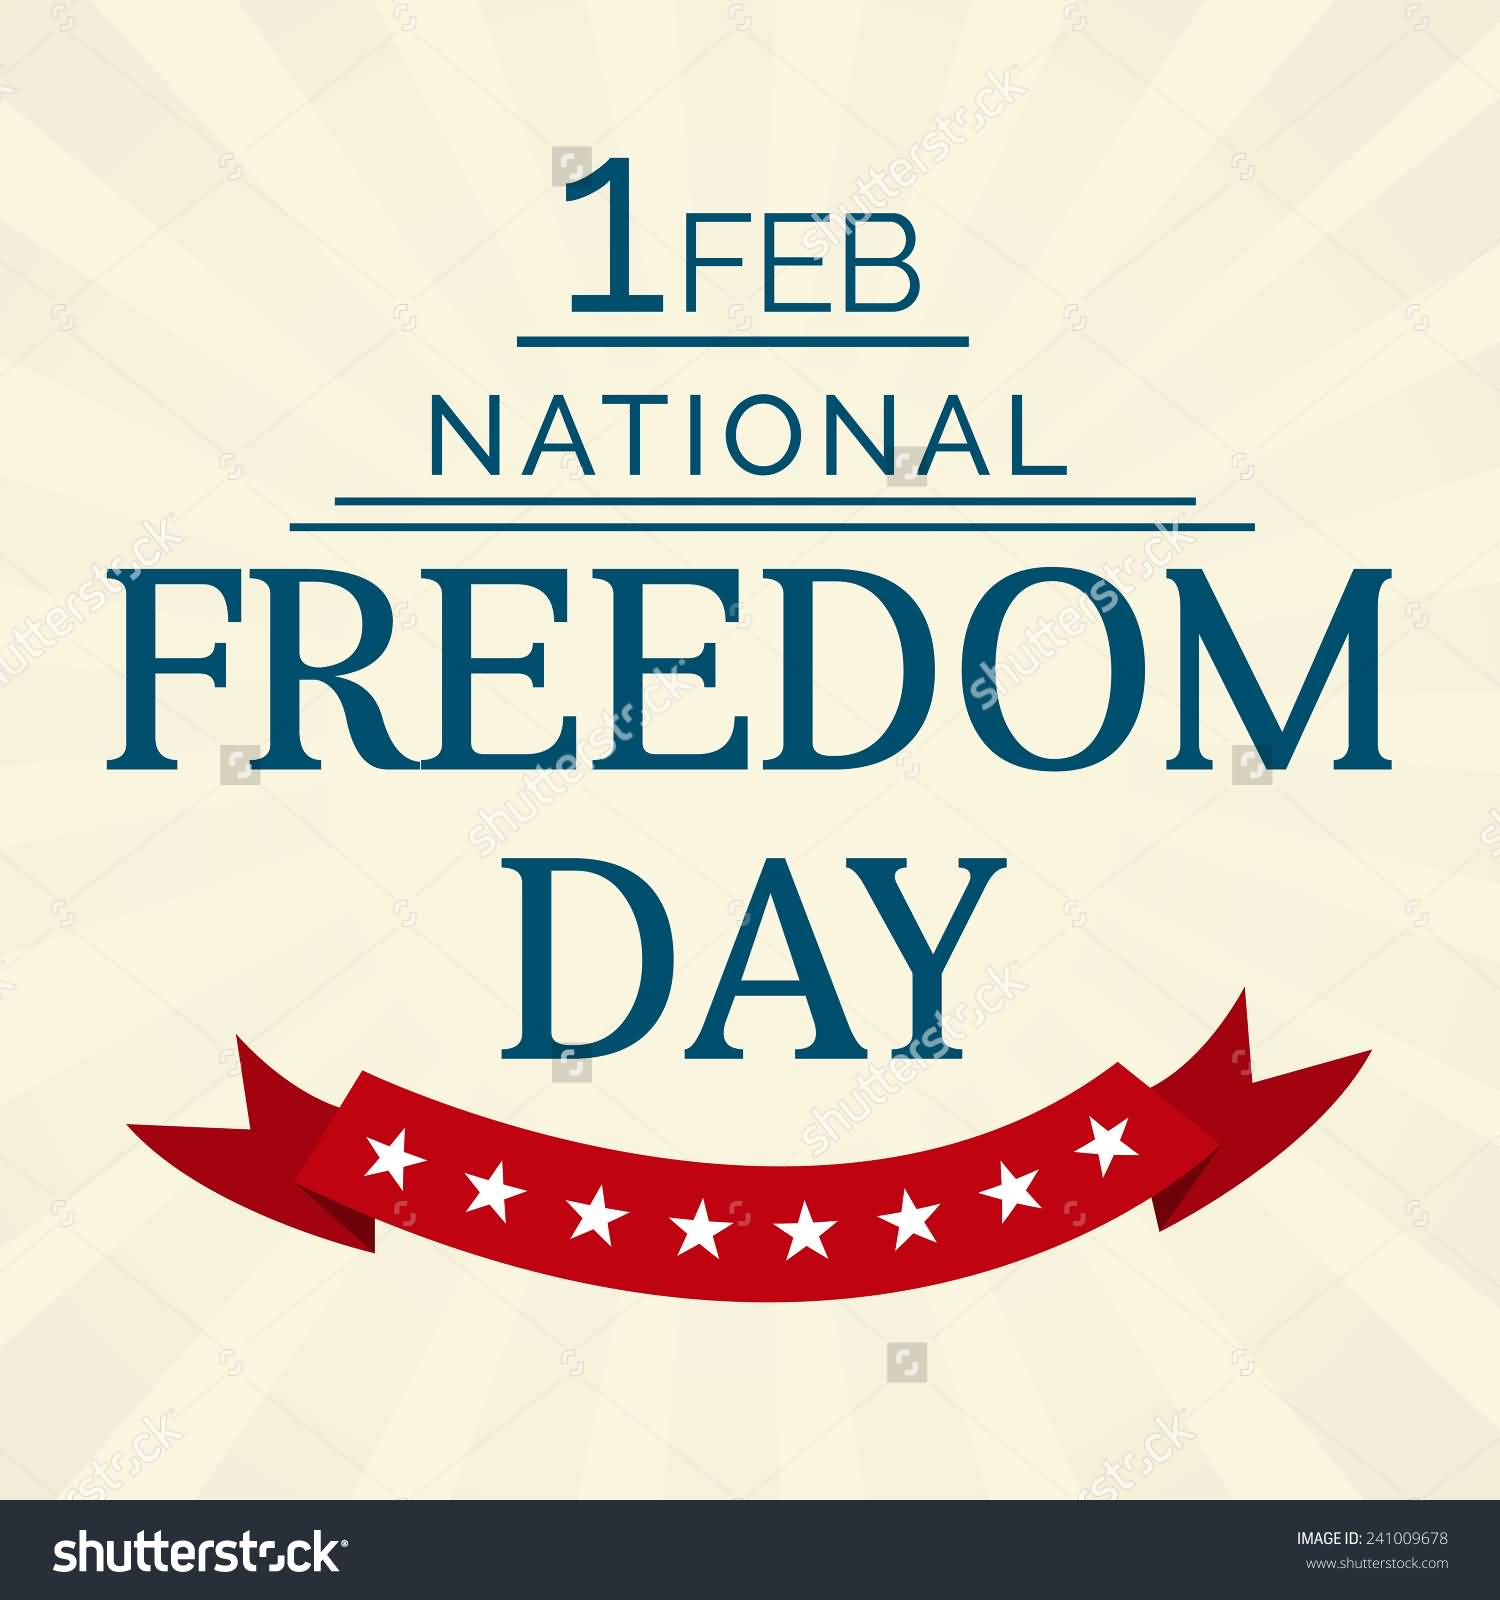 Happy National Freedom Day People Joining Hands.